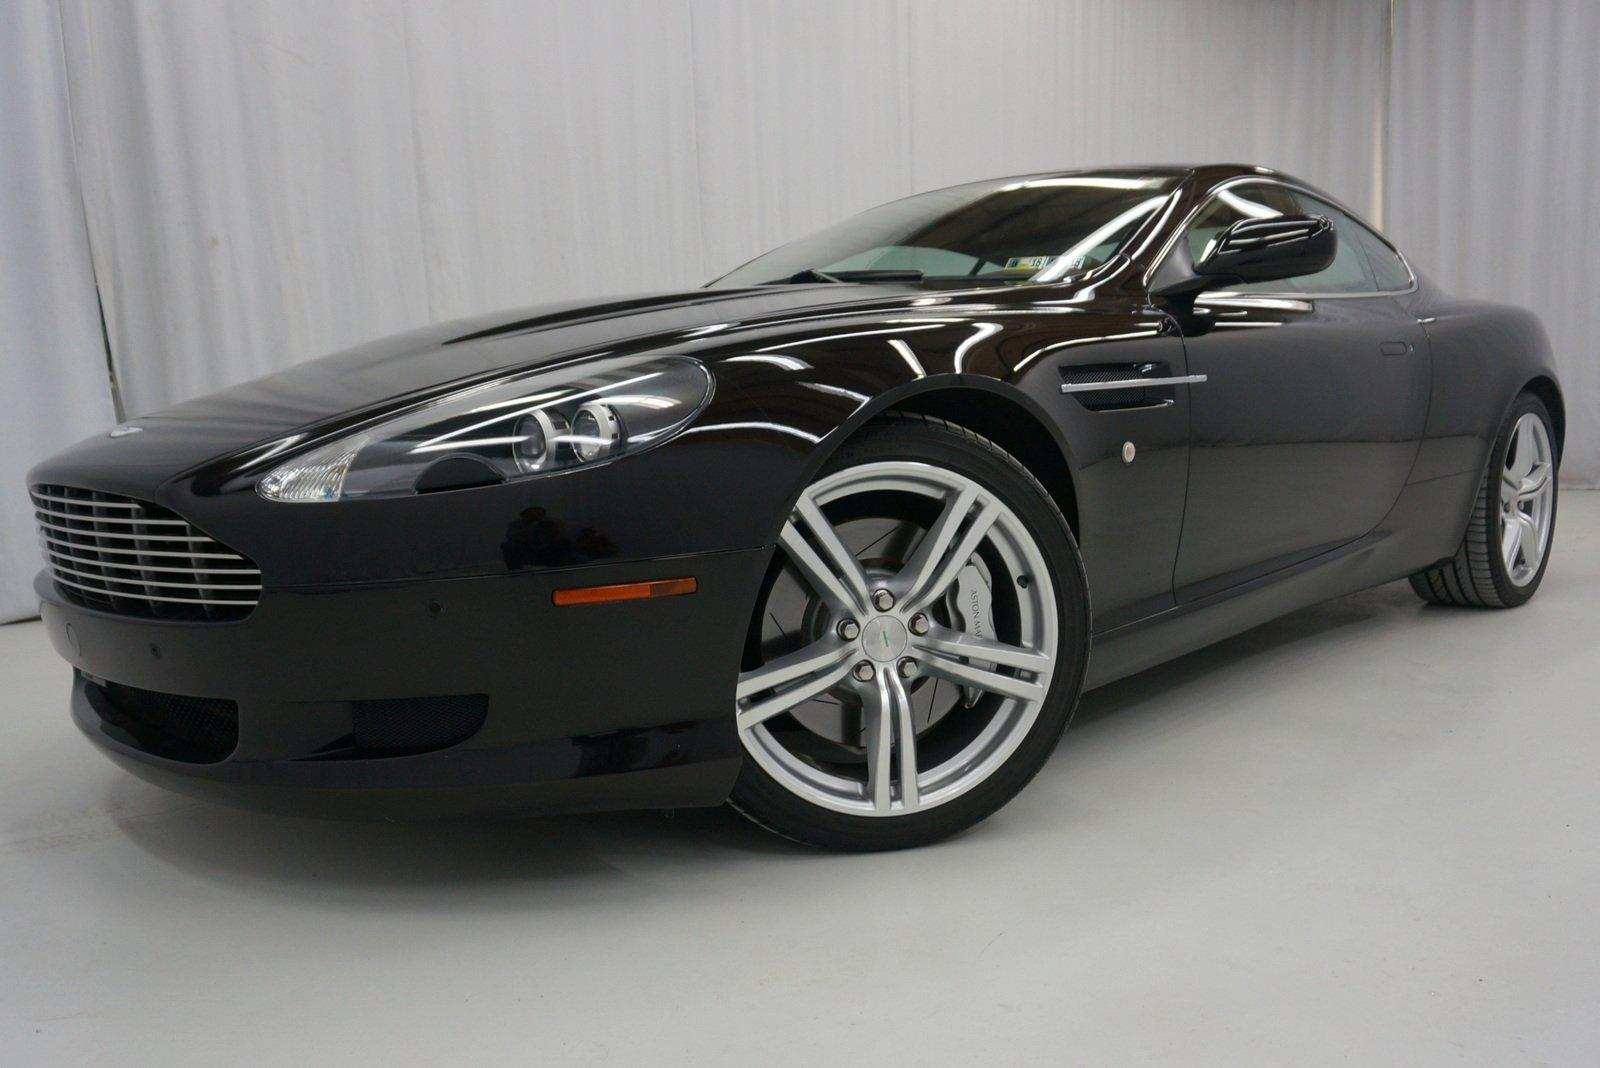 2008 aston martin db9 stock # ga09765 for sale near king of prussia